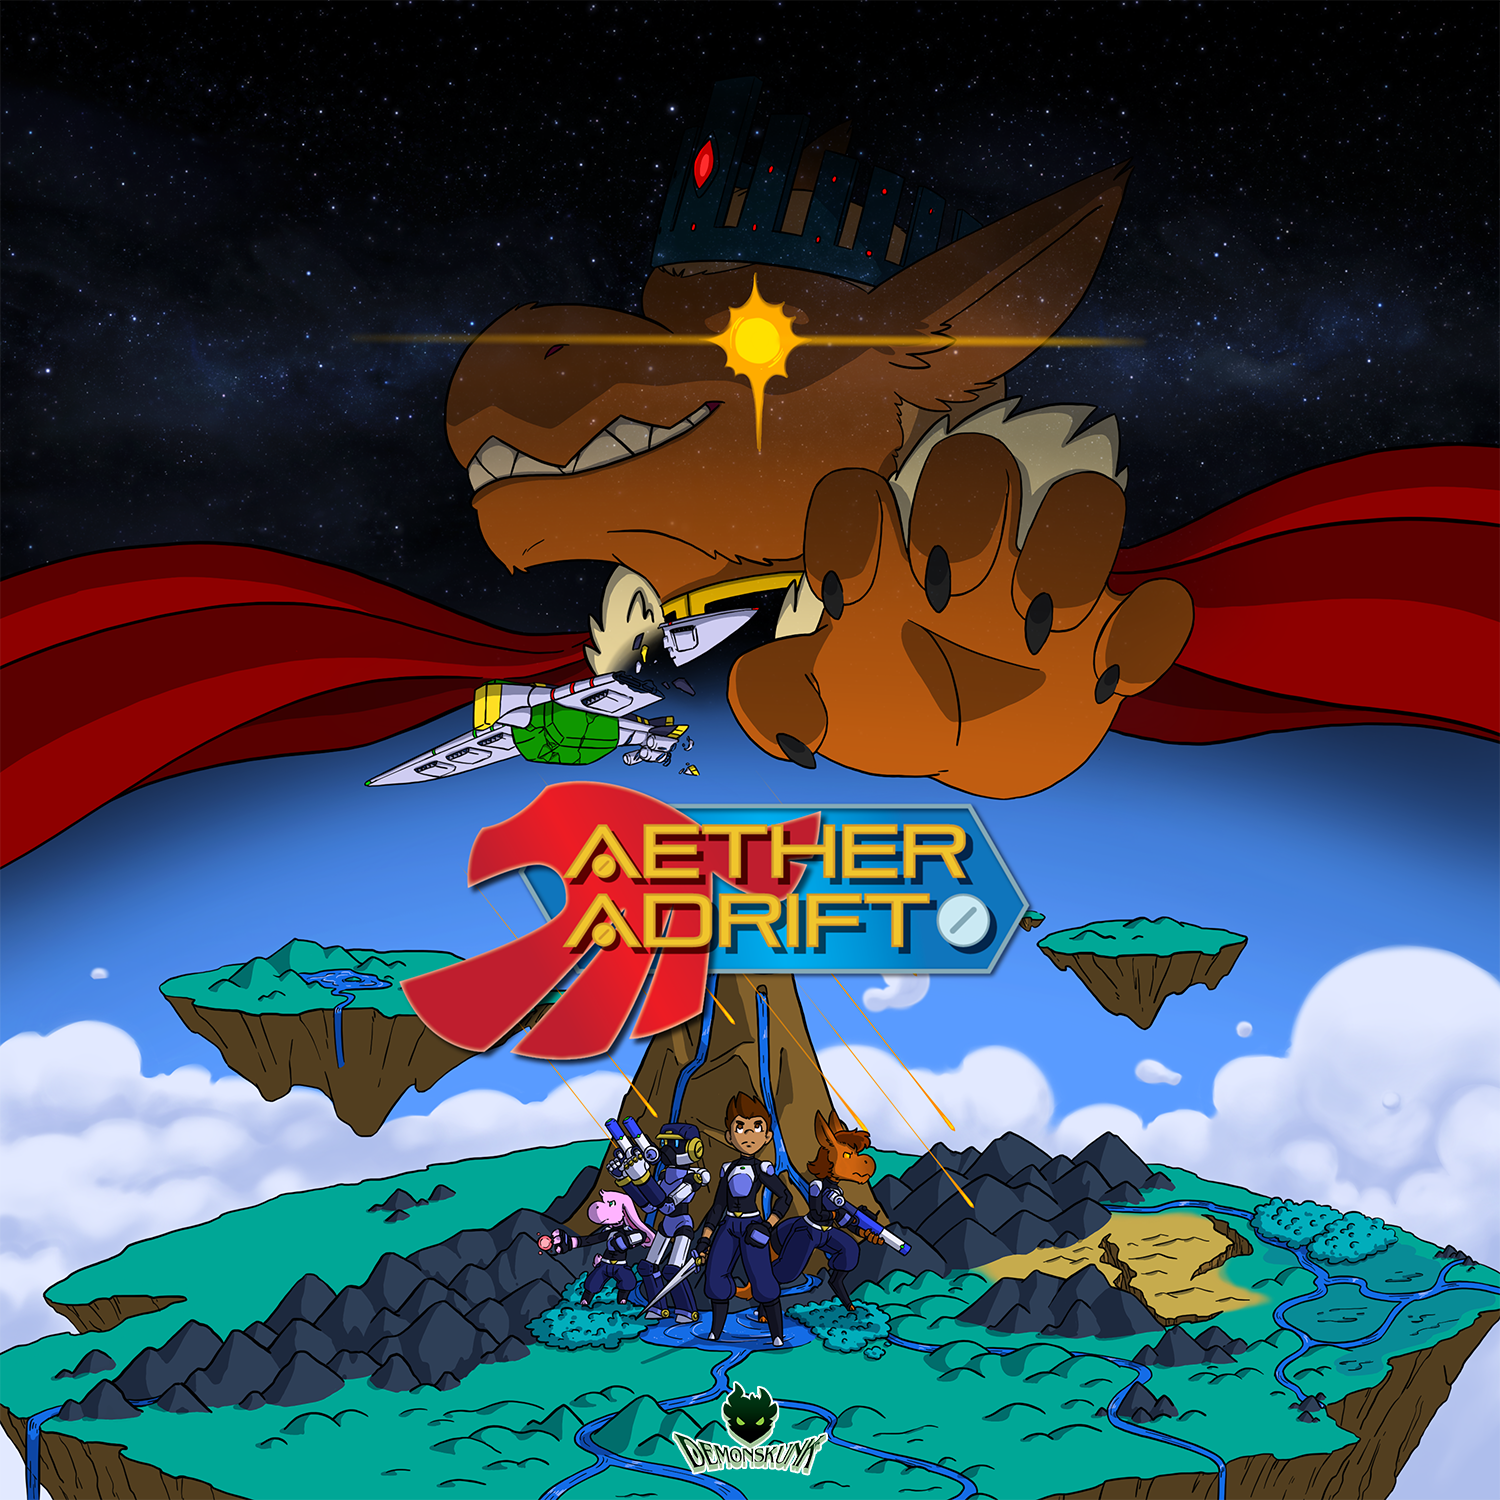 Aether adrift - On a distant alien world of floating islands and a vast cloud sea; humans have crashed landed and must contend with native inhabitants and plunder ancient technological ruins for answers.Grab the free Jumpstart!